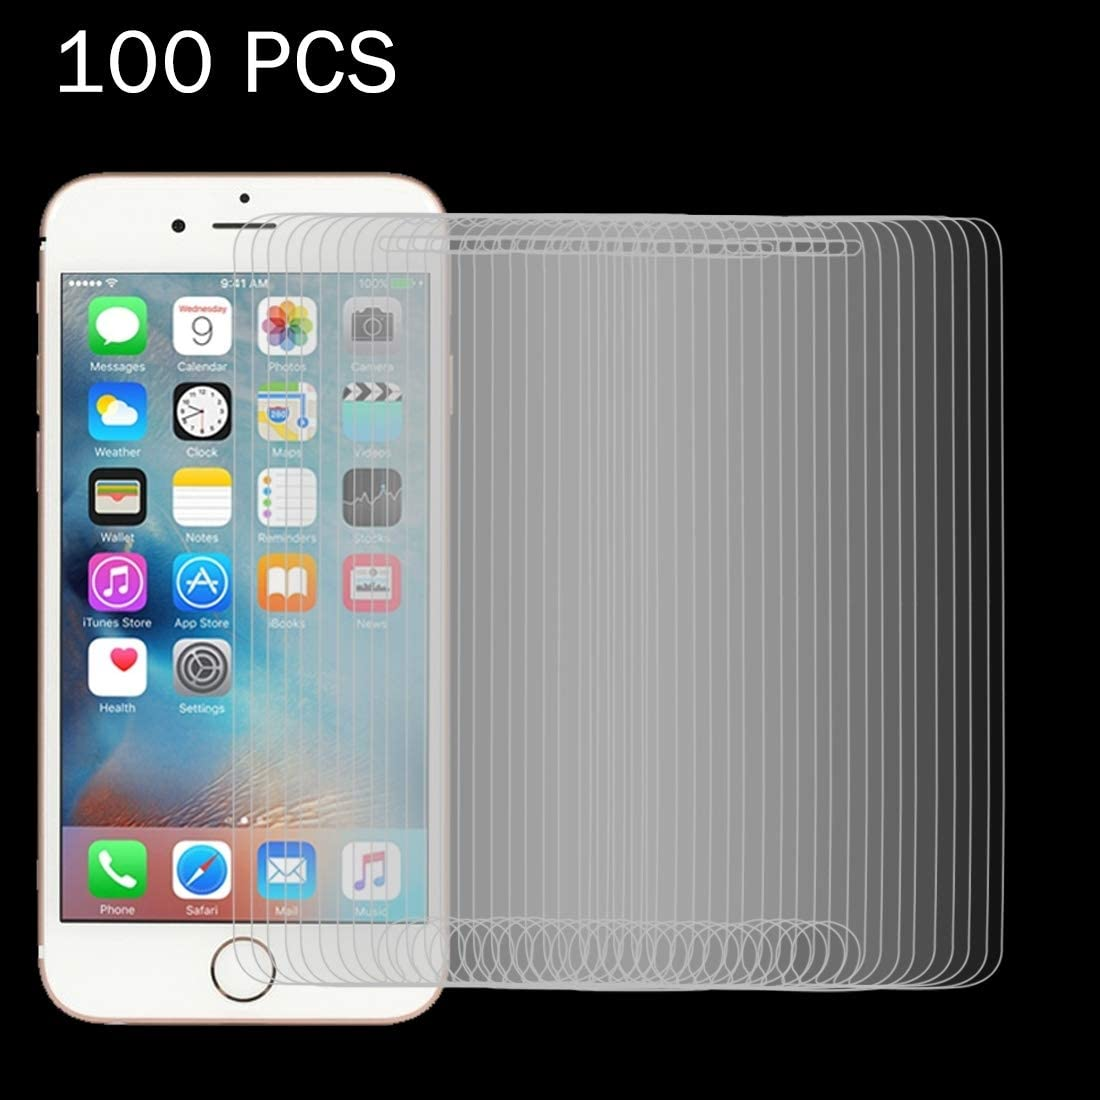 Surface Hardness 2.5D Explosion-Proof Tempered Glass Film Anti-Scratch CAIFENG Tempered Glass Film Screen Protector 100 PCS for iPhone 6 Plus0.26mm 9H